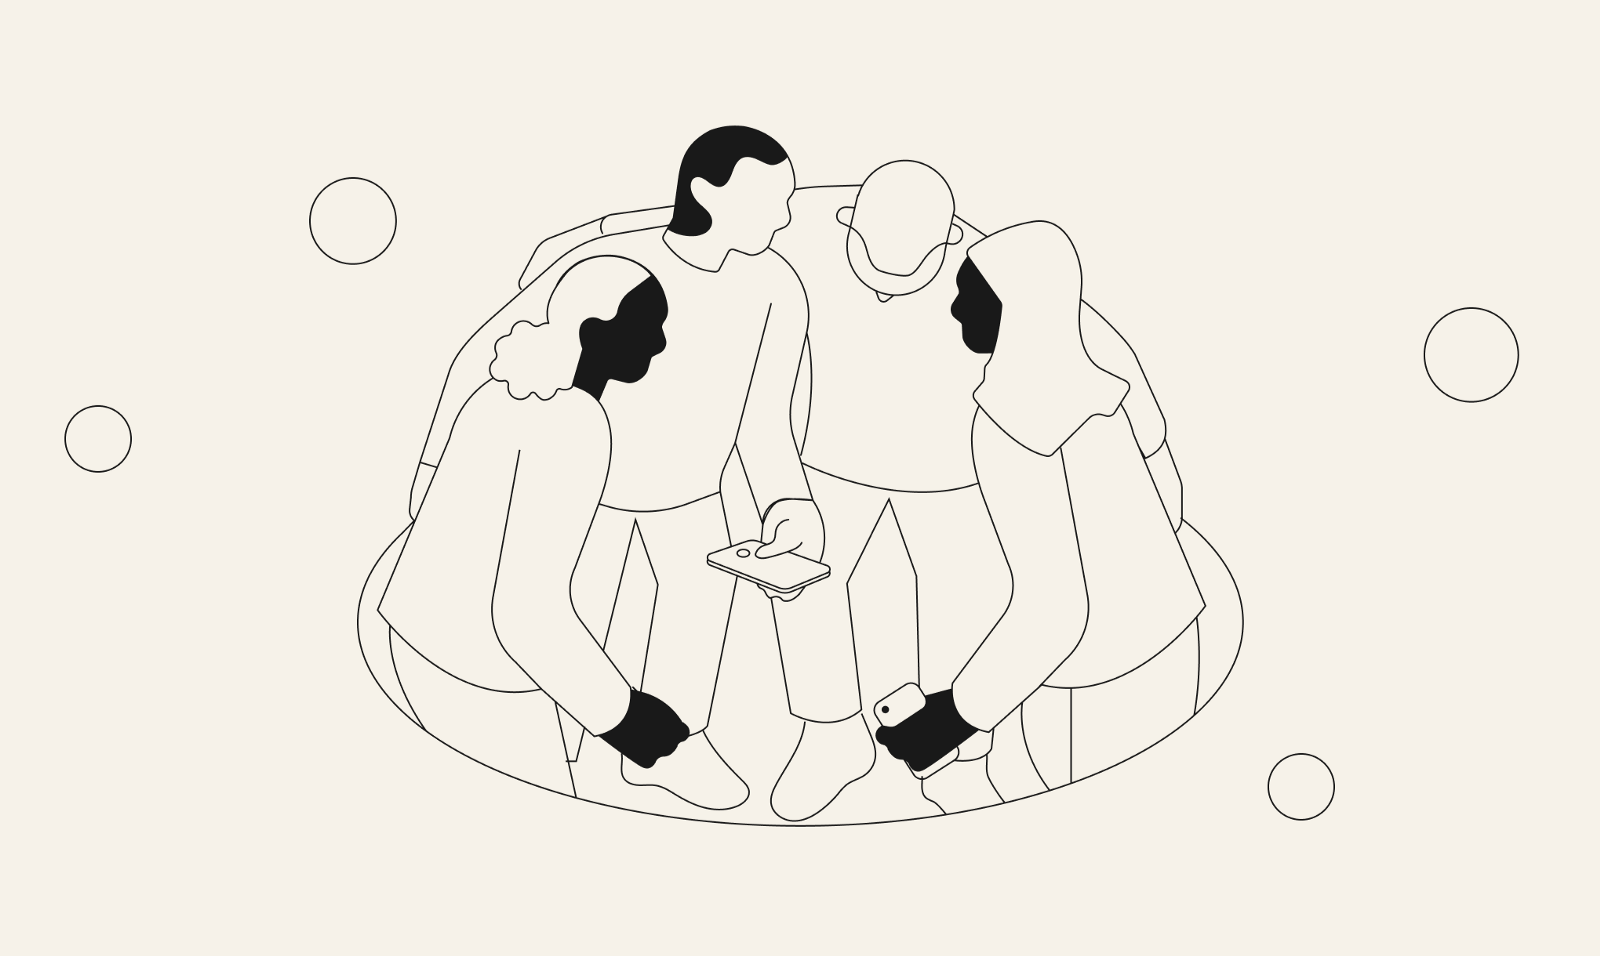 An illustration of a diverse group of people standing together looking at a smartphone.O